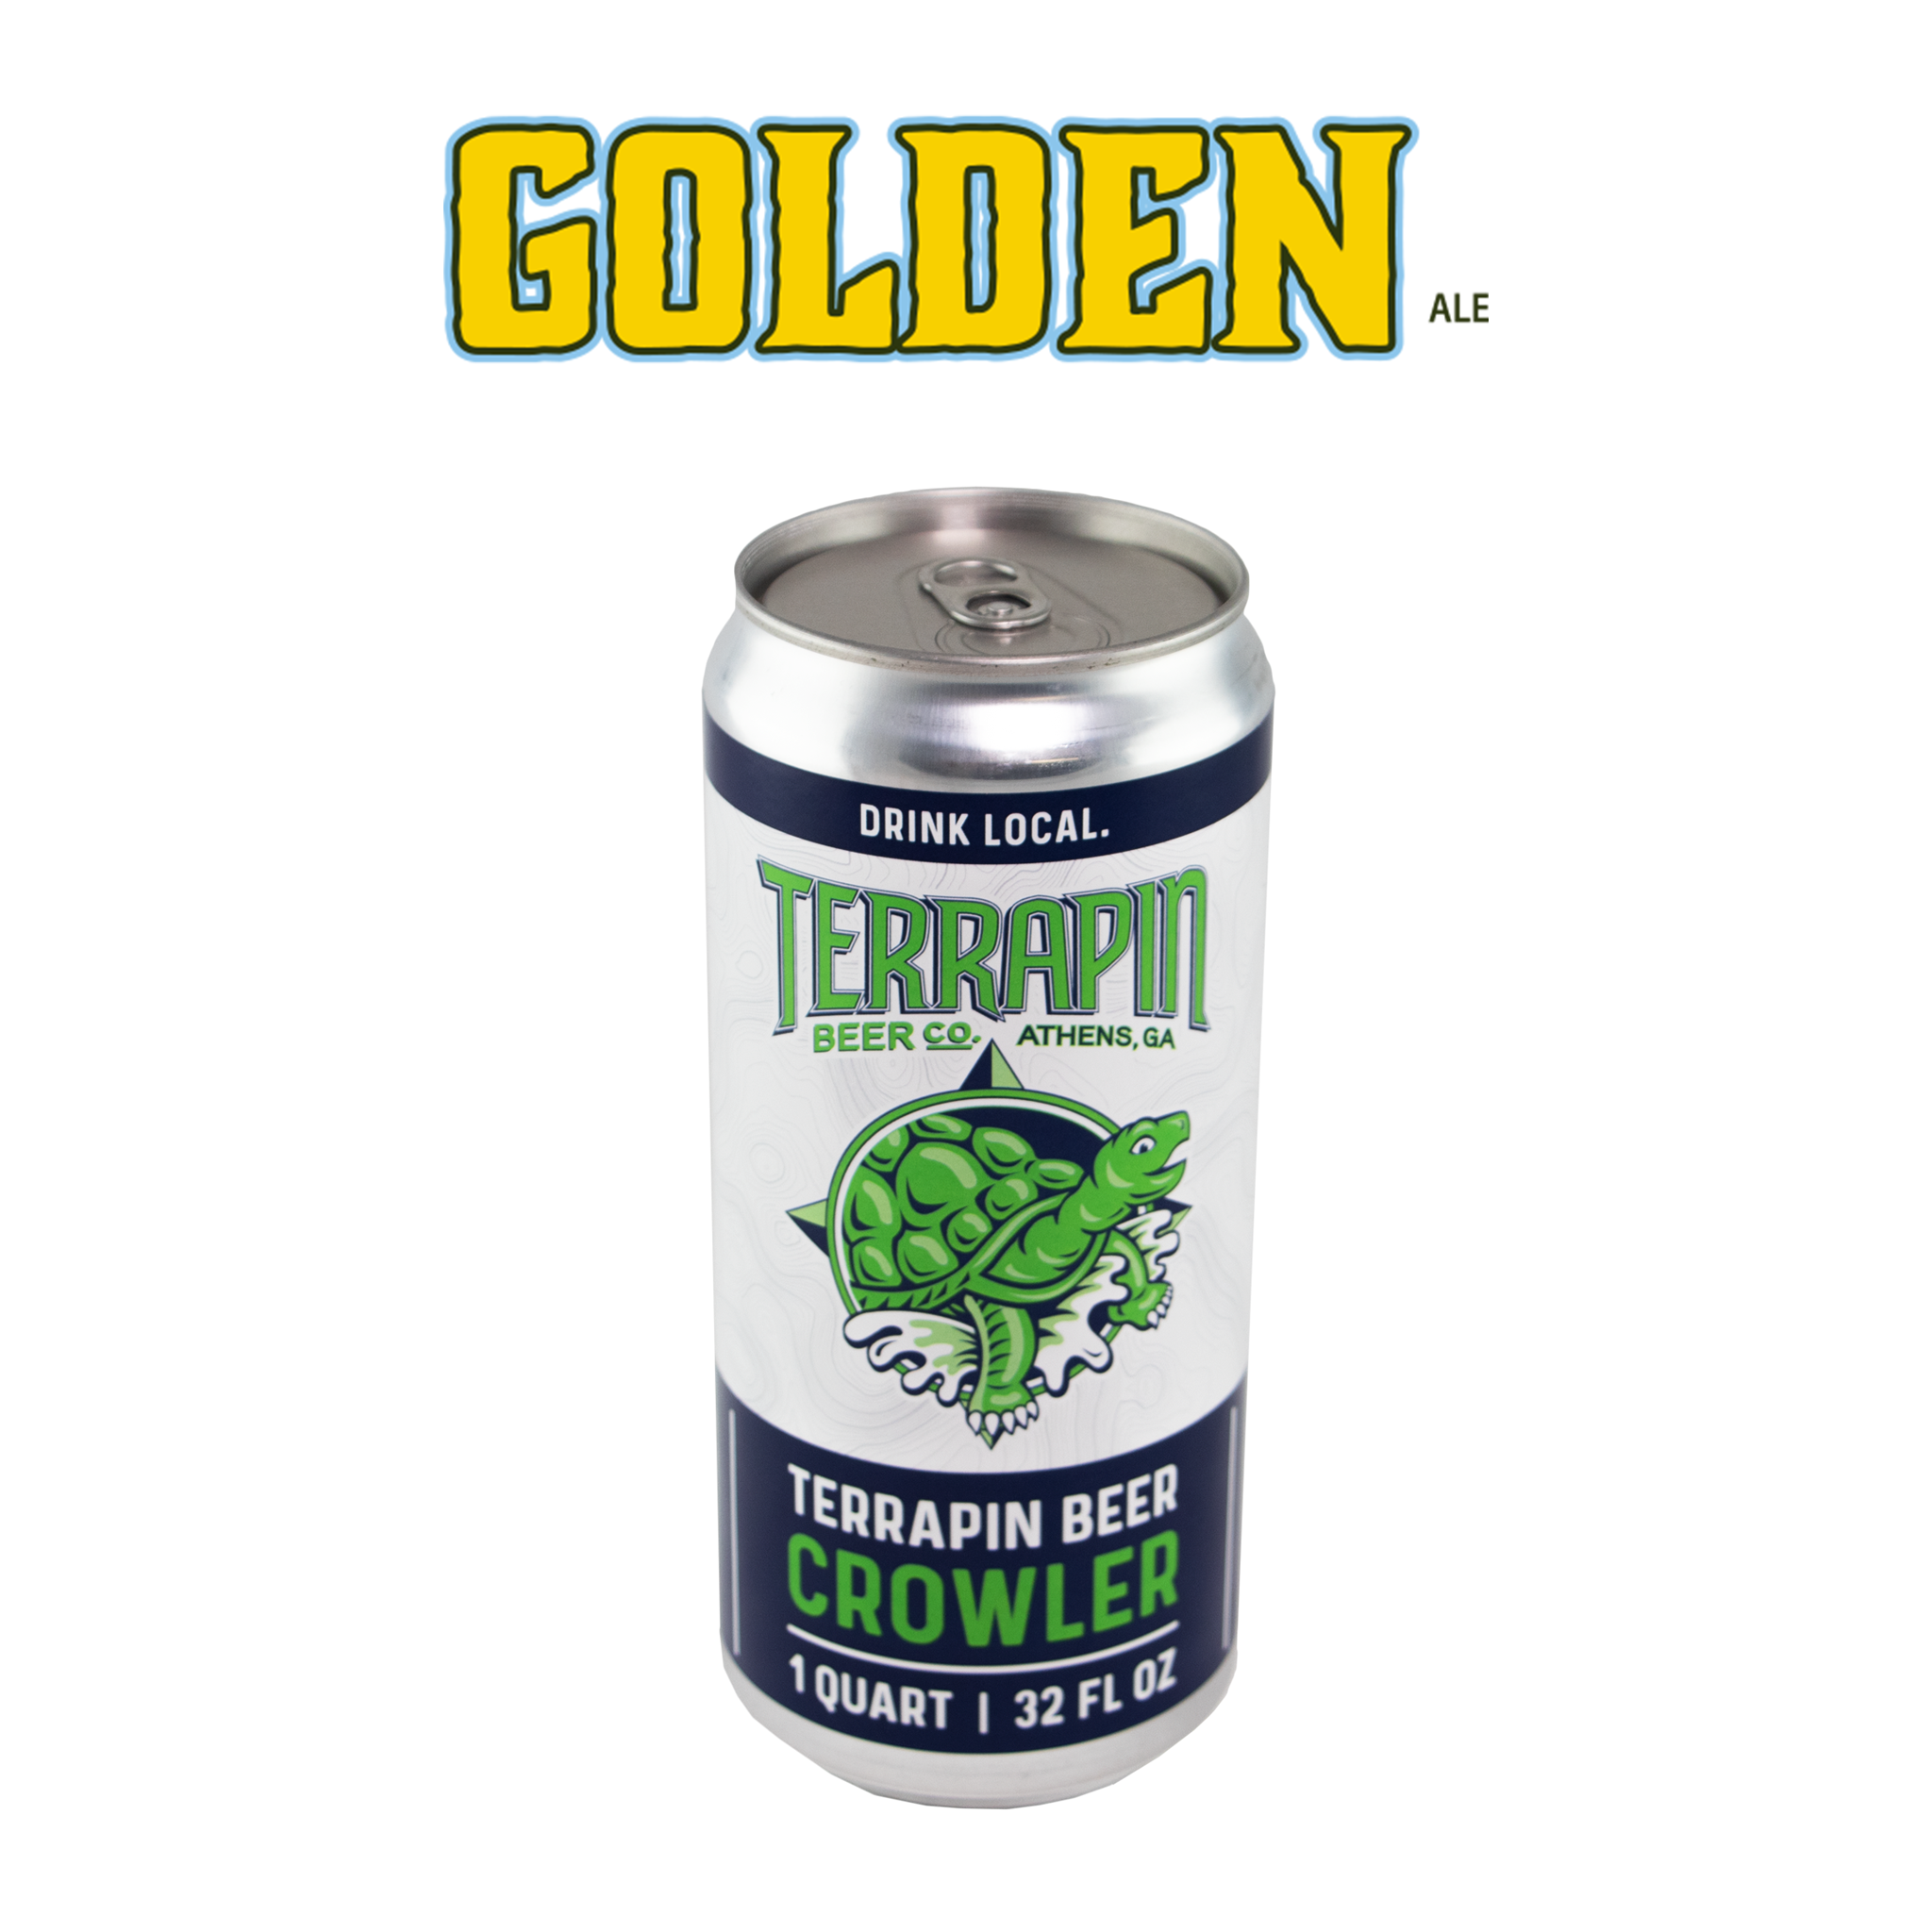 GOLDEN ALE- 32 OZ CROWLER